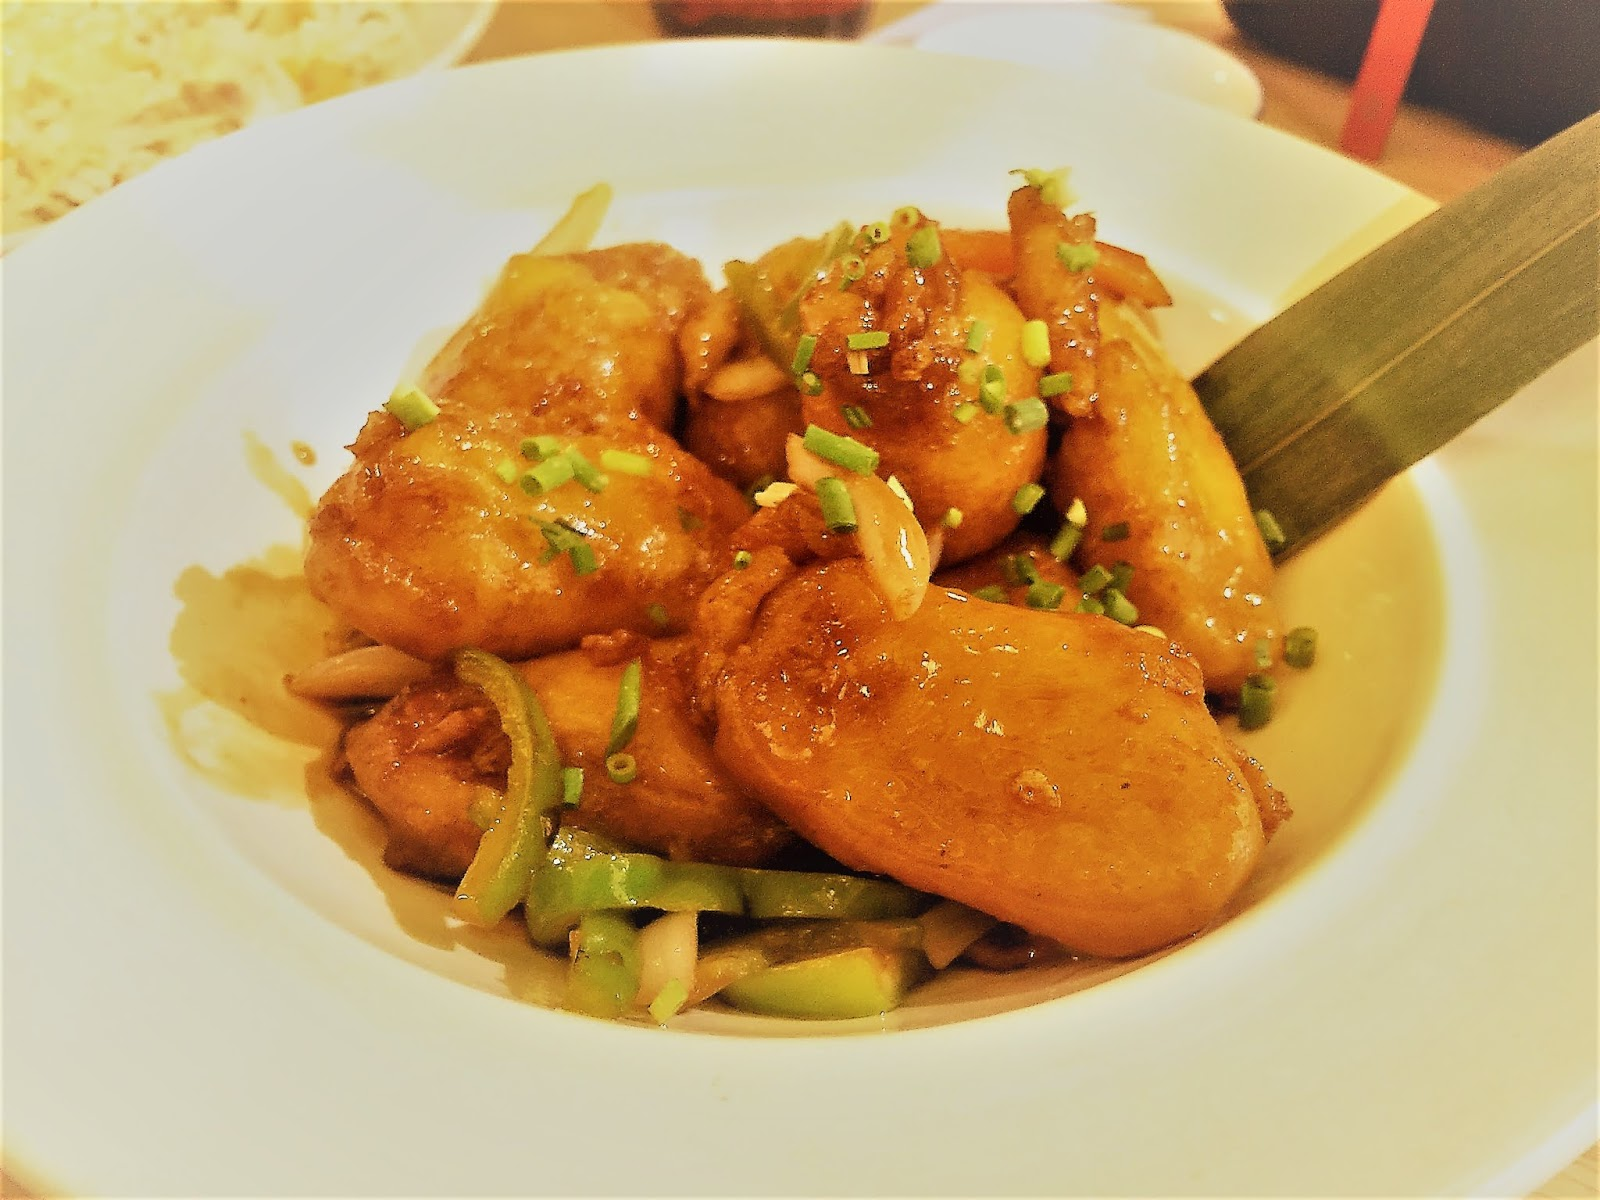 Jing Ting in City of Dreams Manila's Wok-fried Sweet and Sour Pork Belly (PHP410)